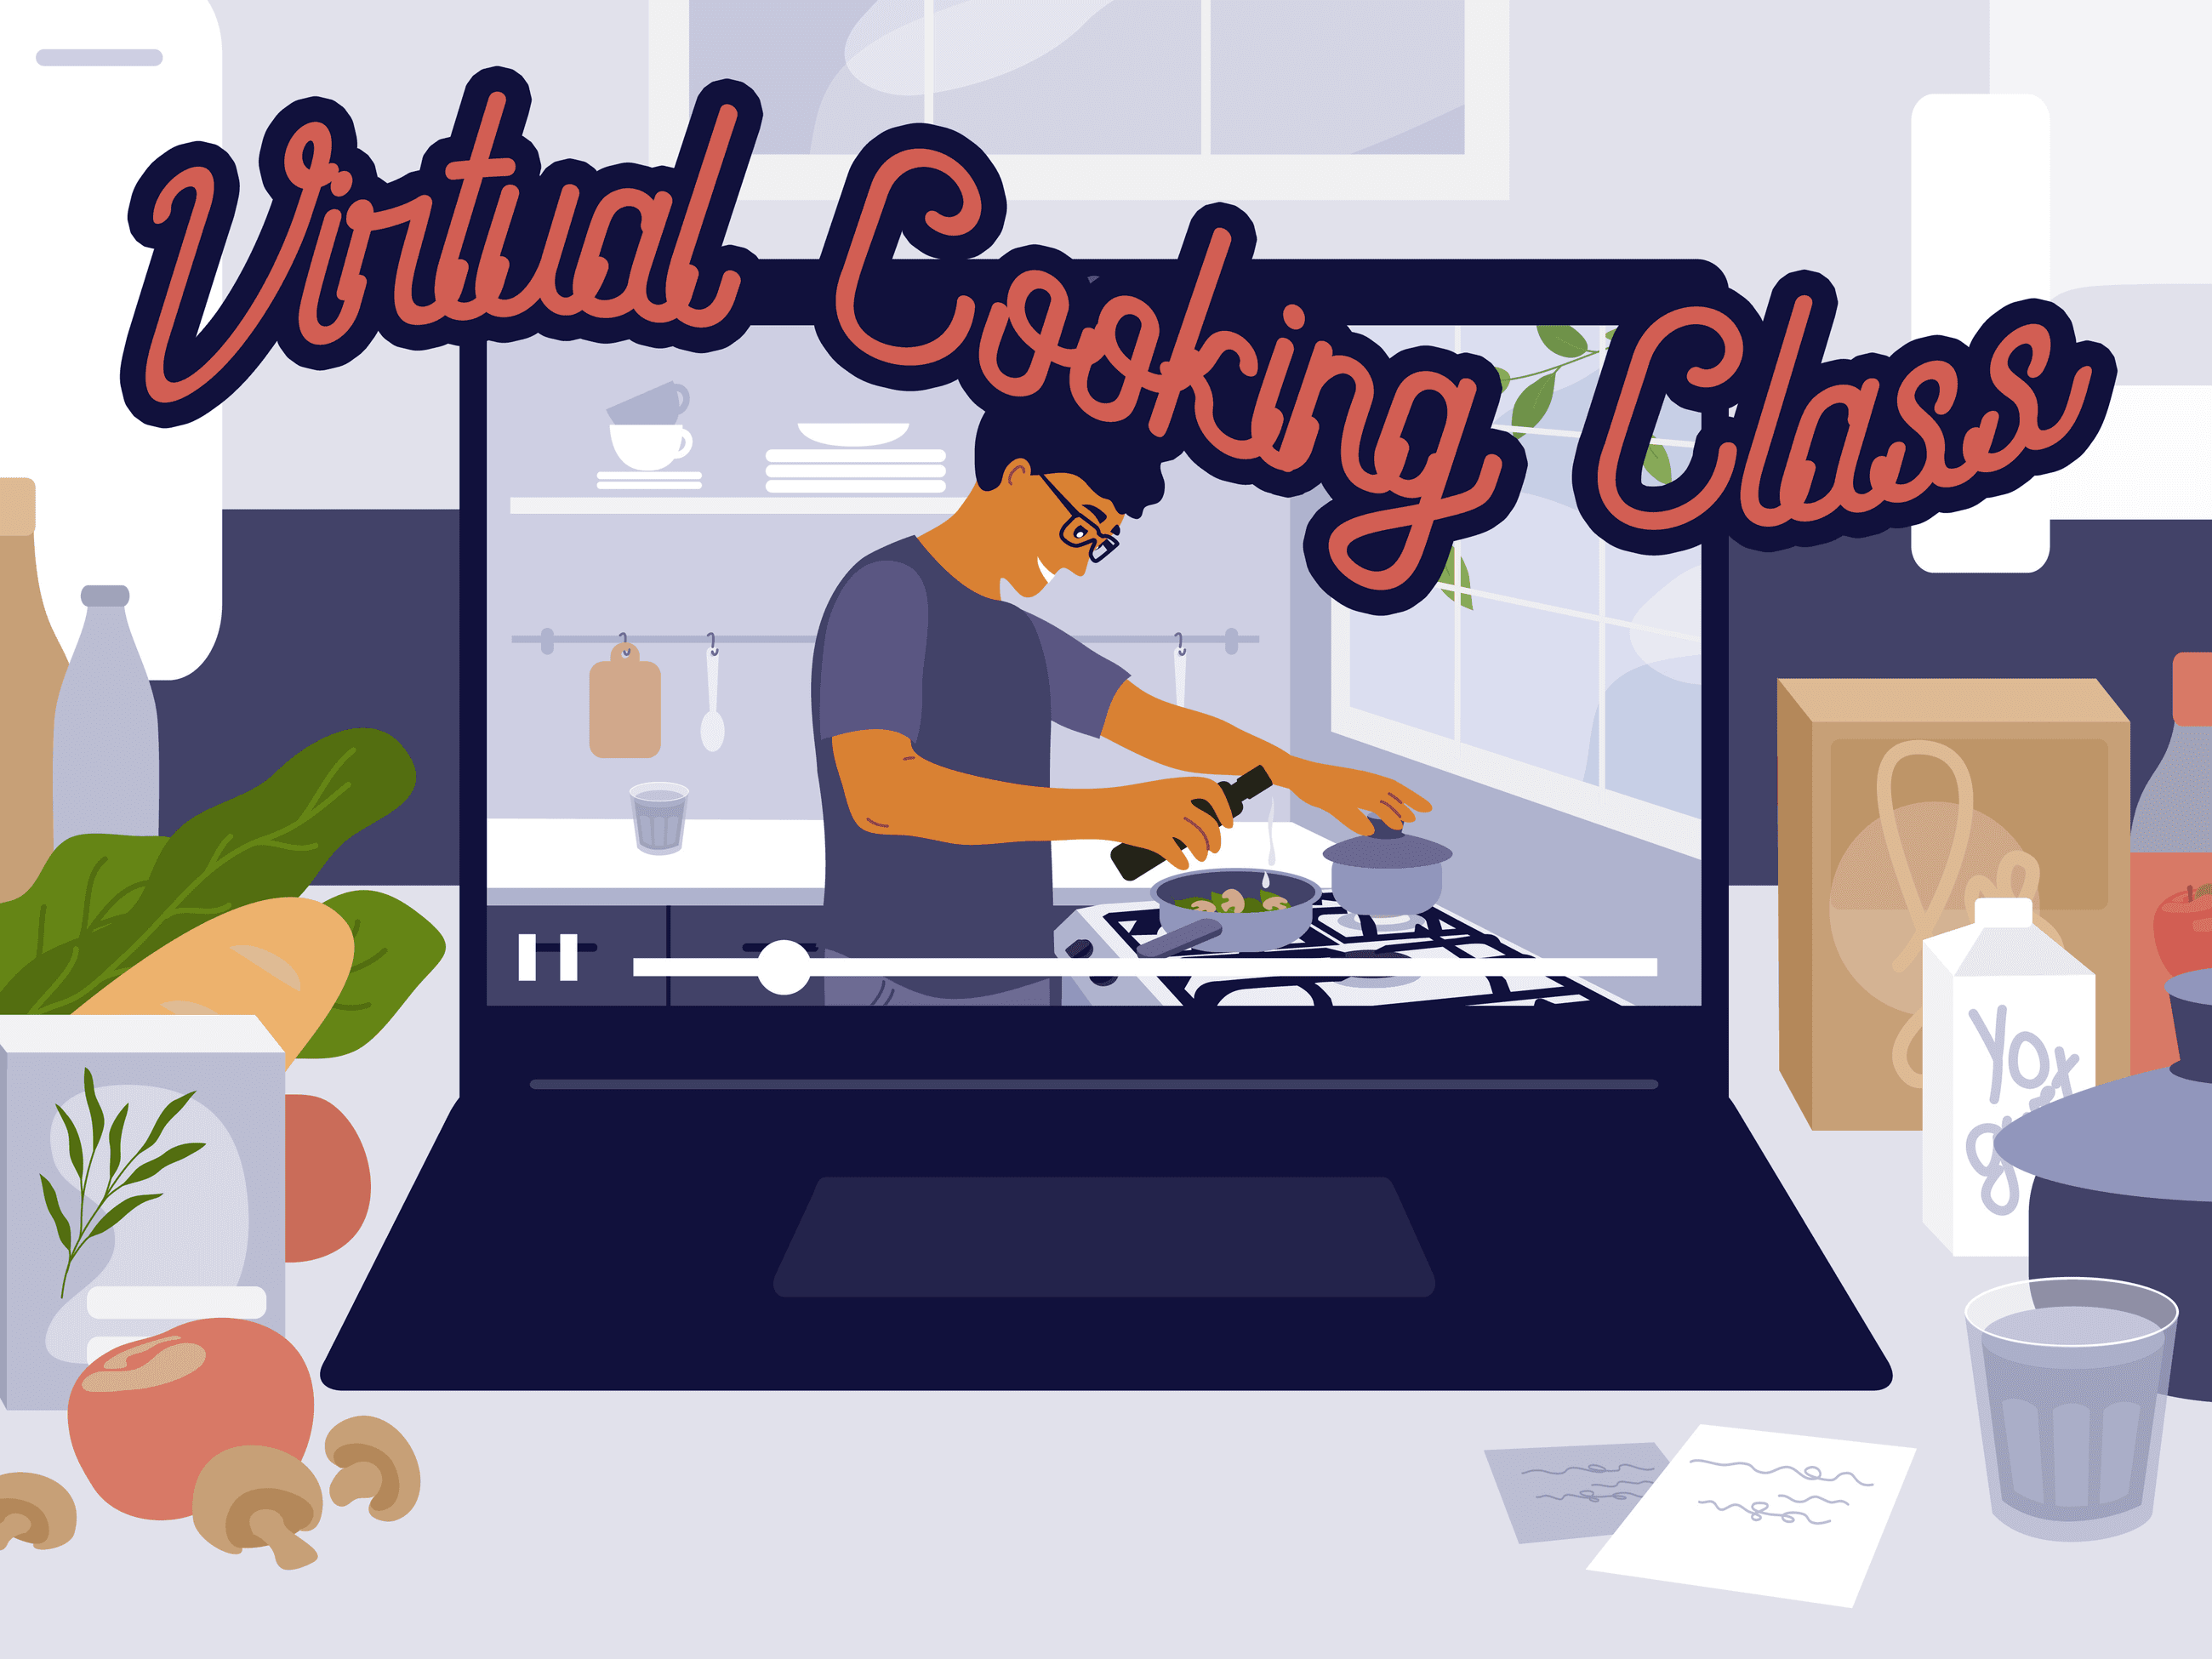 Virtual Cooking Class_Spotlight